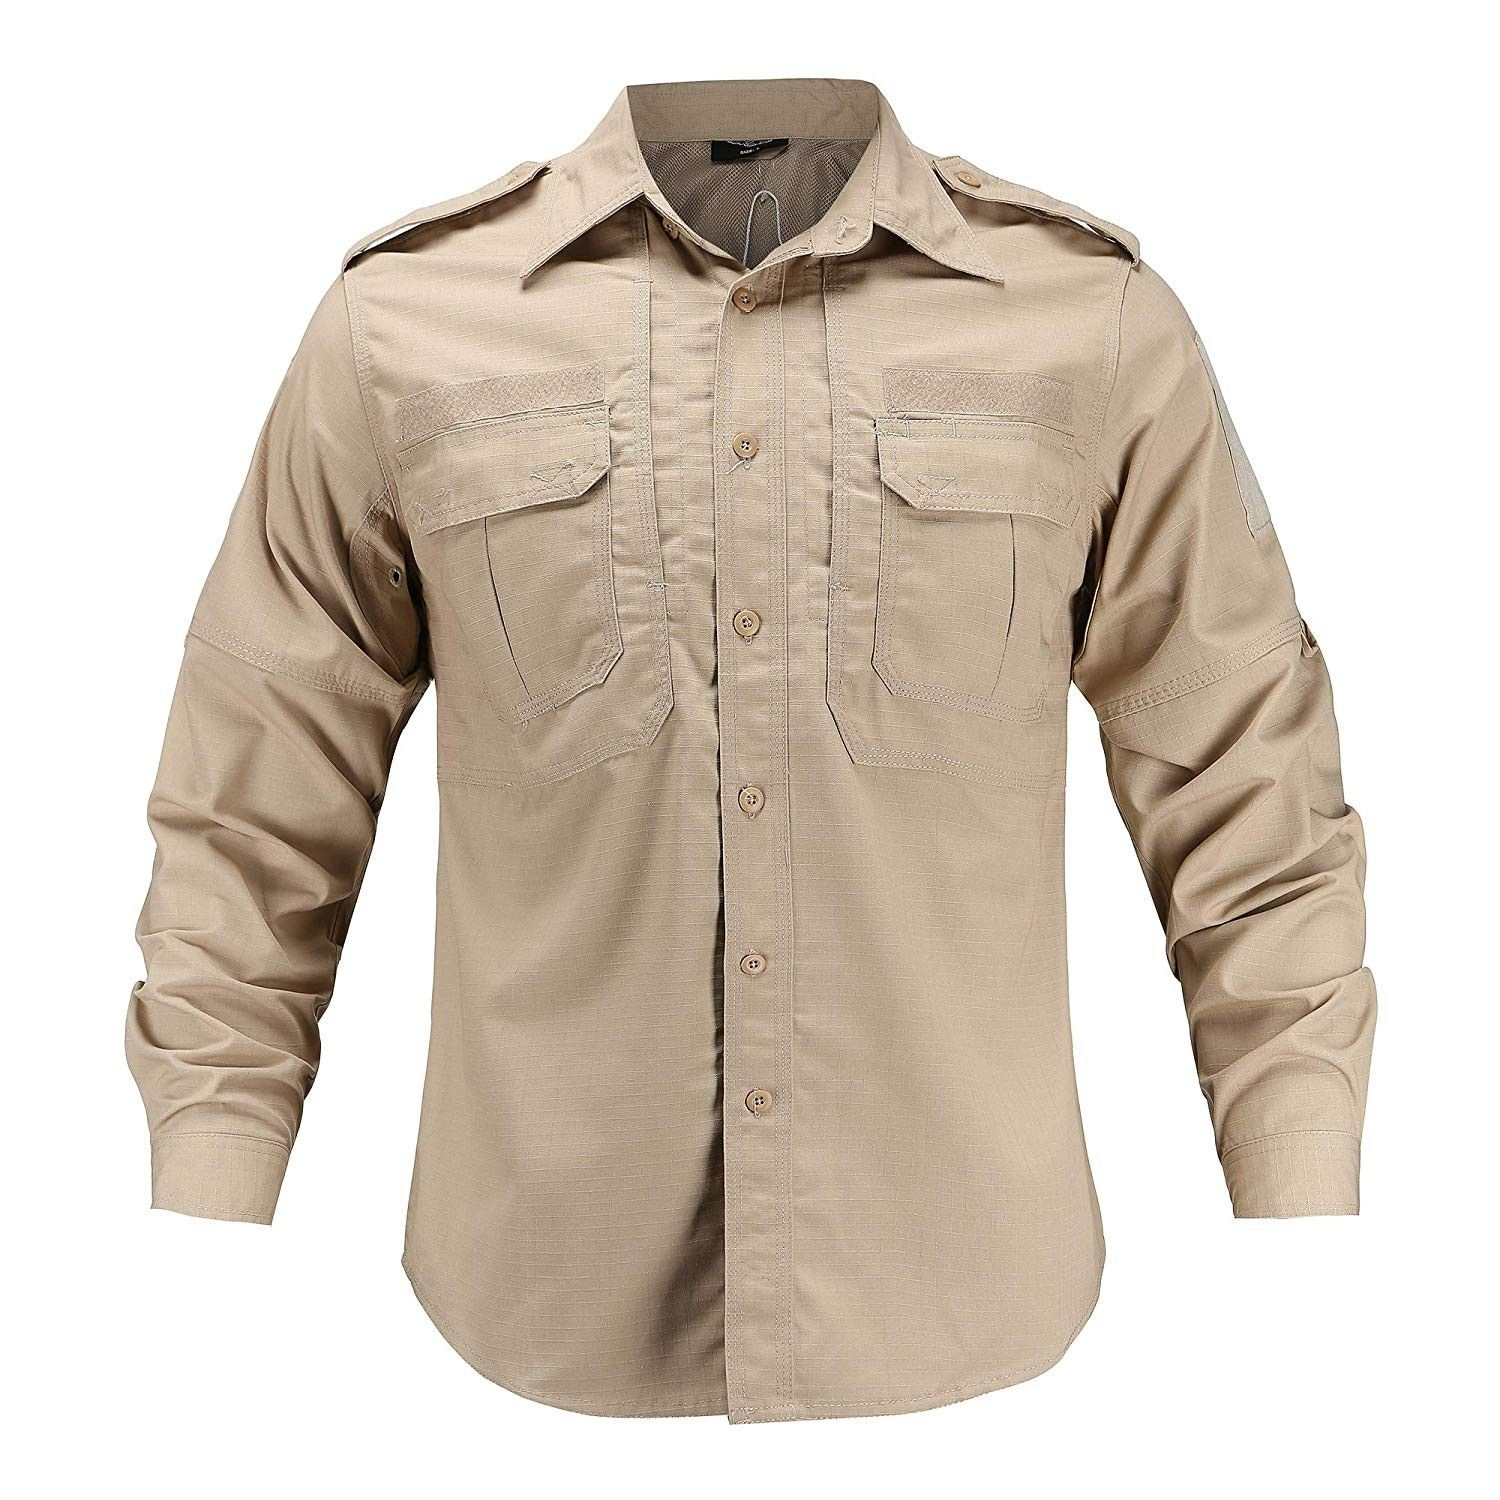 Large Indian Motorcycle Mens UV Protect Long Sleeve